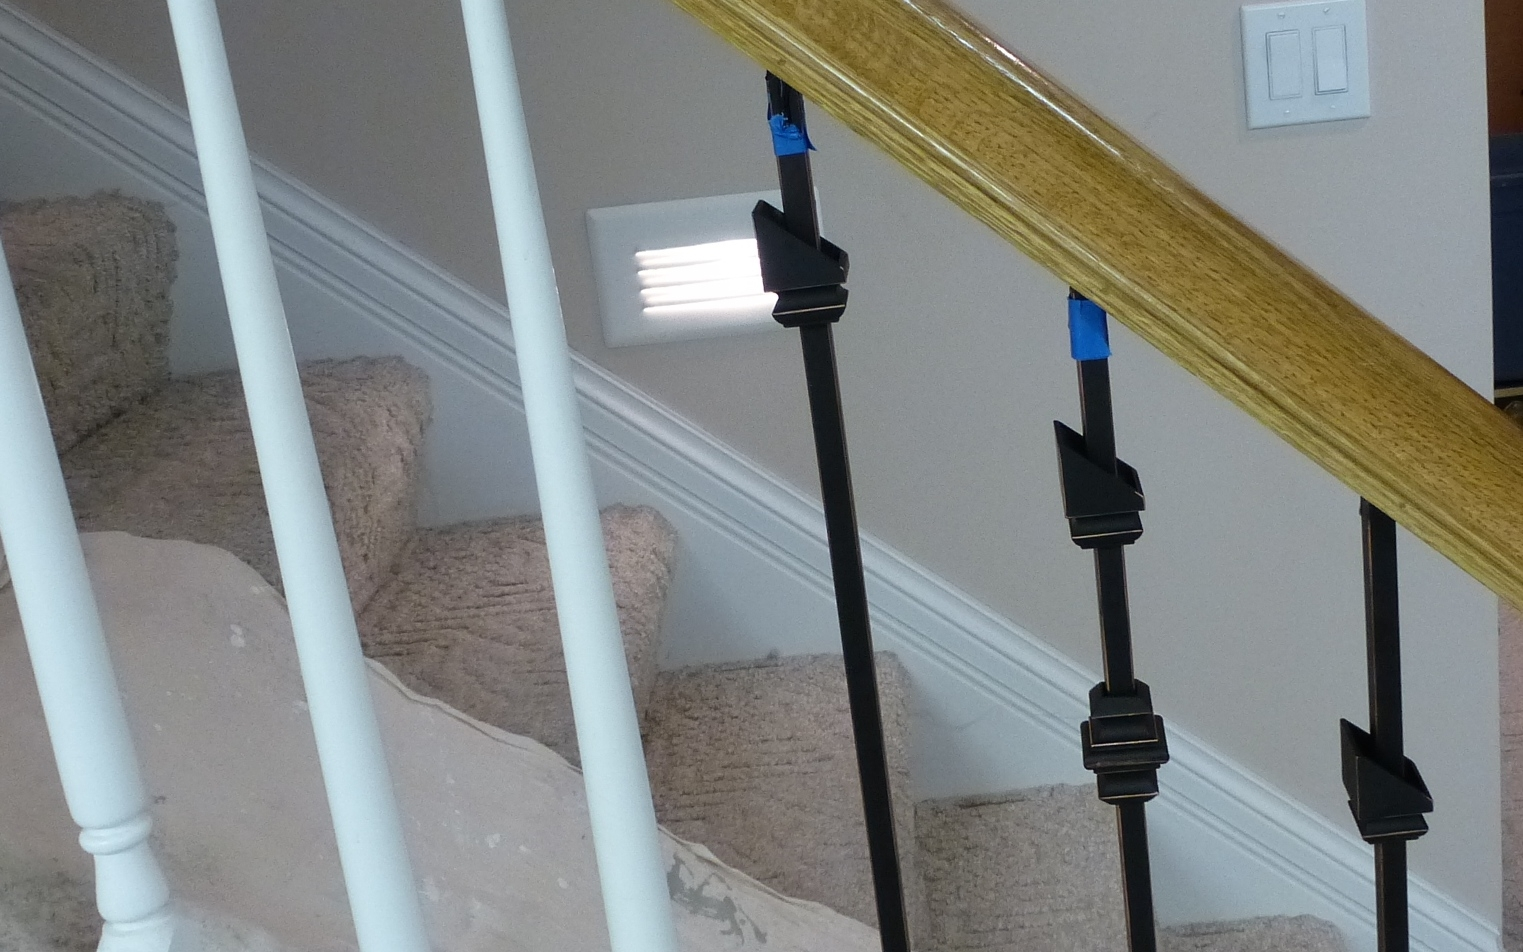 Replacing Wooden Stair Balusters Spindles With Wrought Iron   Indoor Wrought Iron Railings Home Depot   Balusters   Wood   Iron Stair Rail   Stair Parts   Front Porch Railings